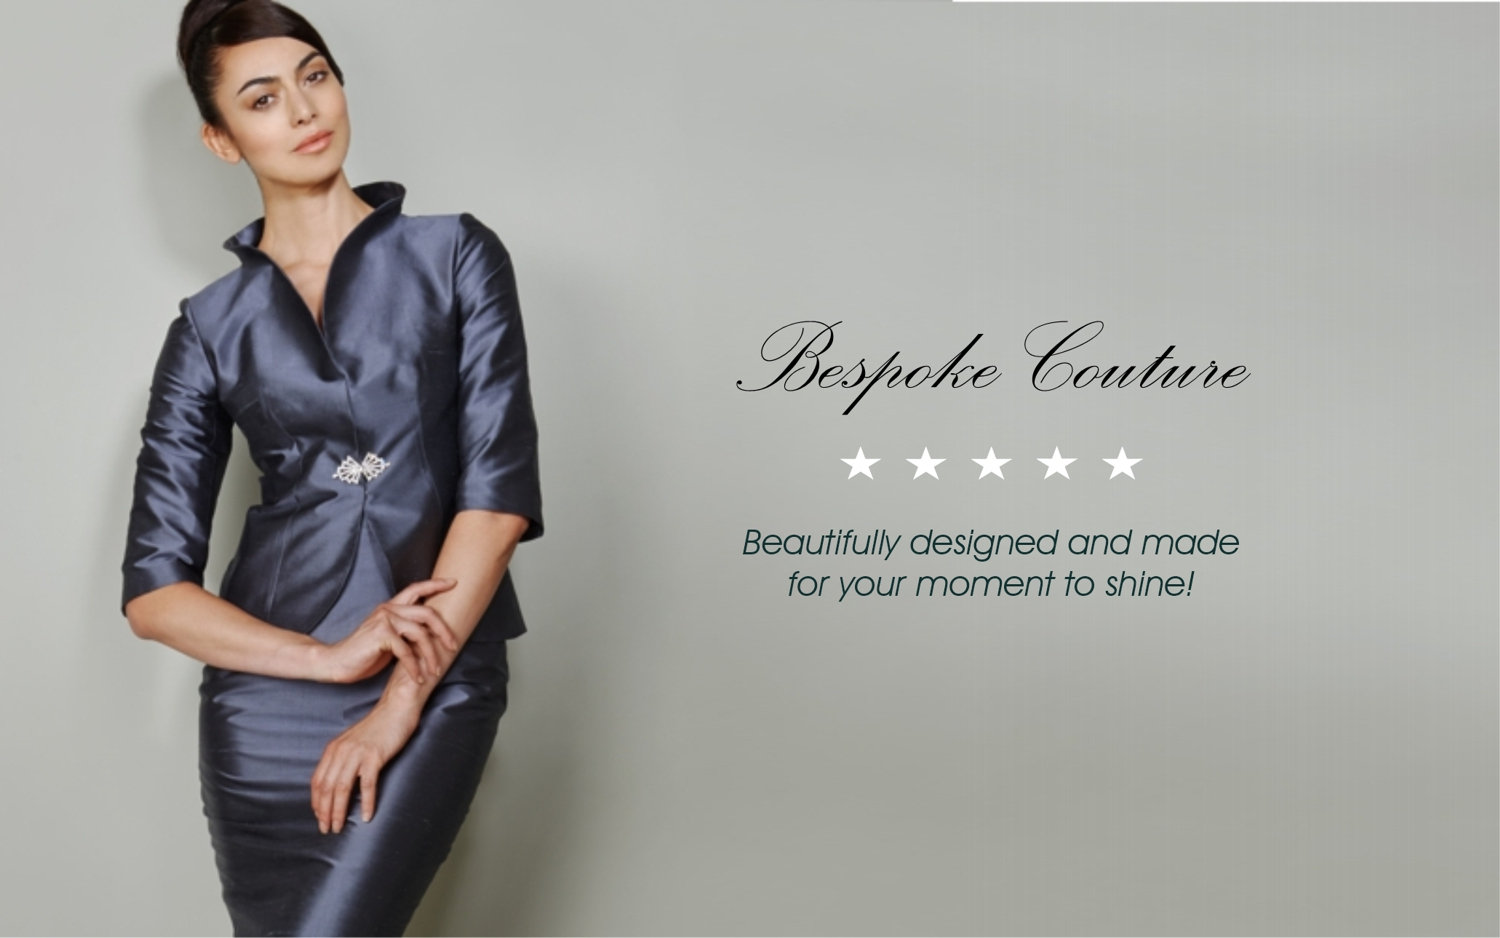 Ladies bespoke couture occasion wear and Mother of the Bride outfits